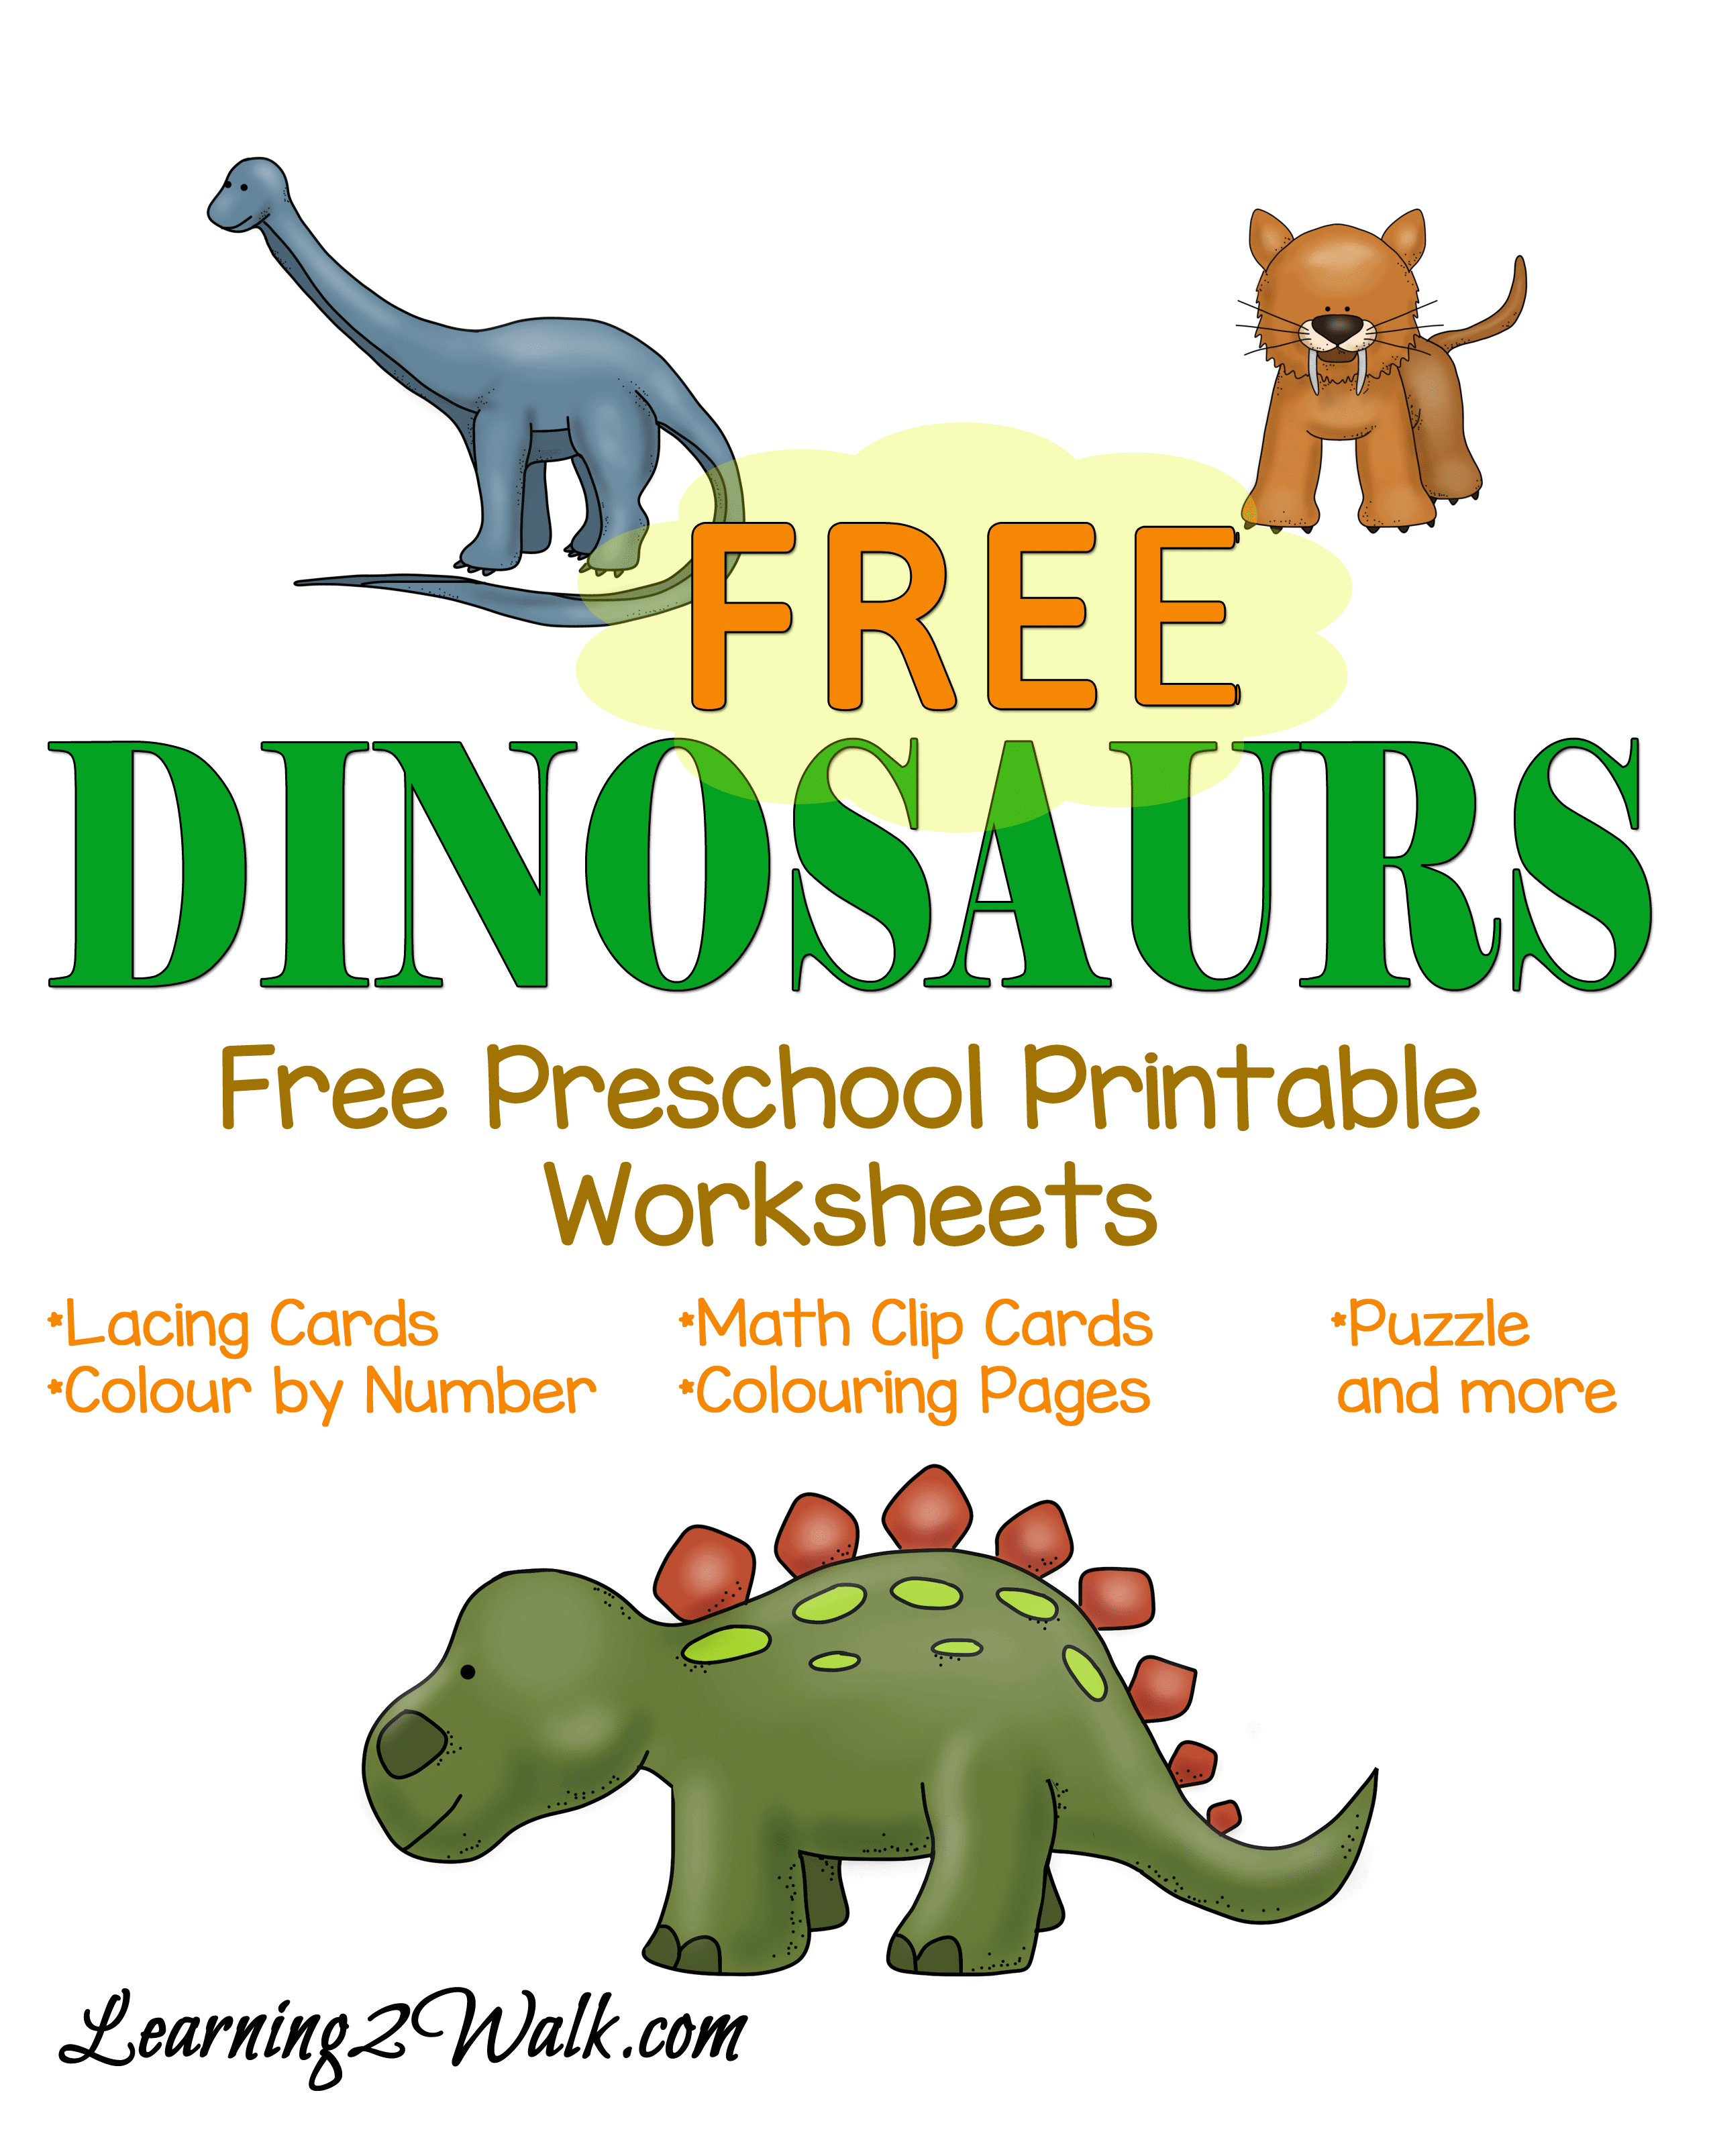 Free Dinosaur Preschool Printable Worksheets